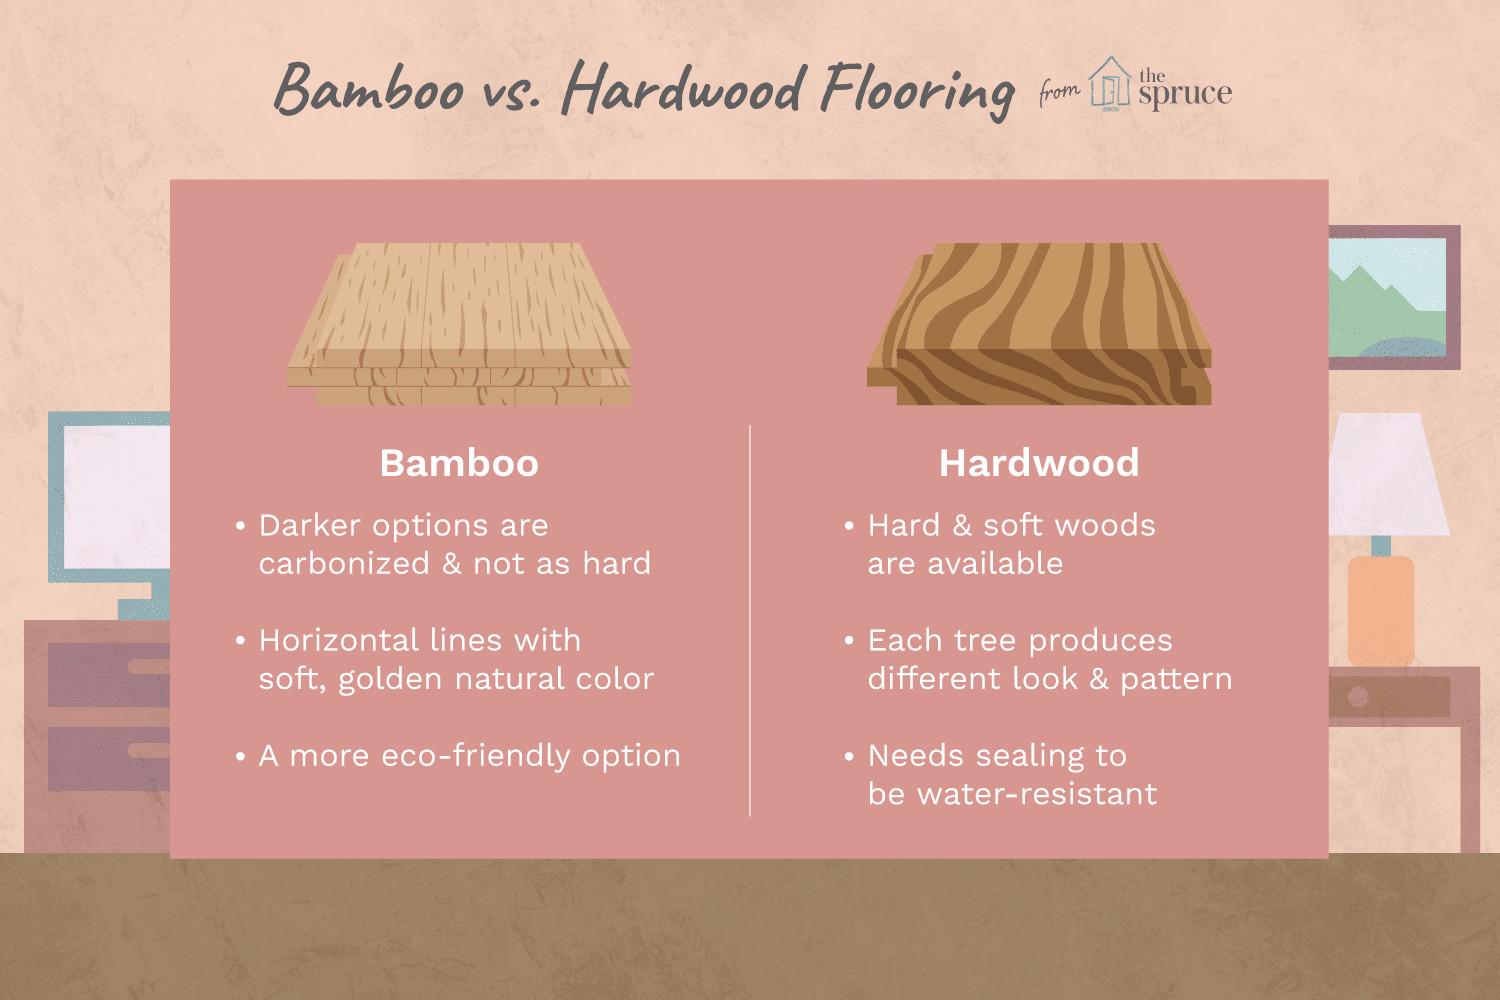 29 attractive Gray Bamboo Hardwood Flooring 2021 free download gray bamboo hardwood flooring of a side by side comparison bamboo and wood flooring with regard to bamboo or hardwood flooring